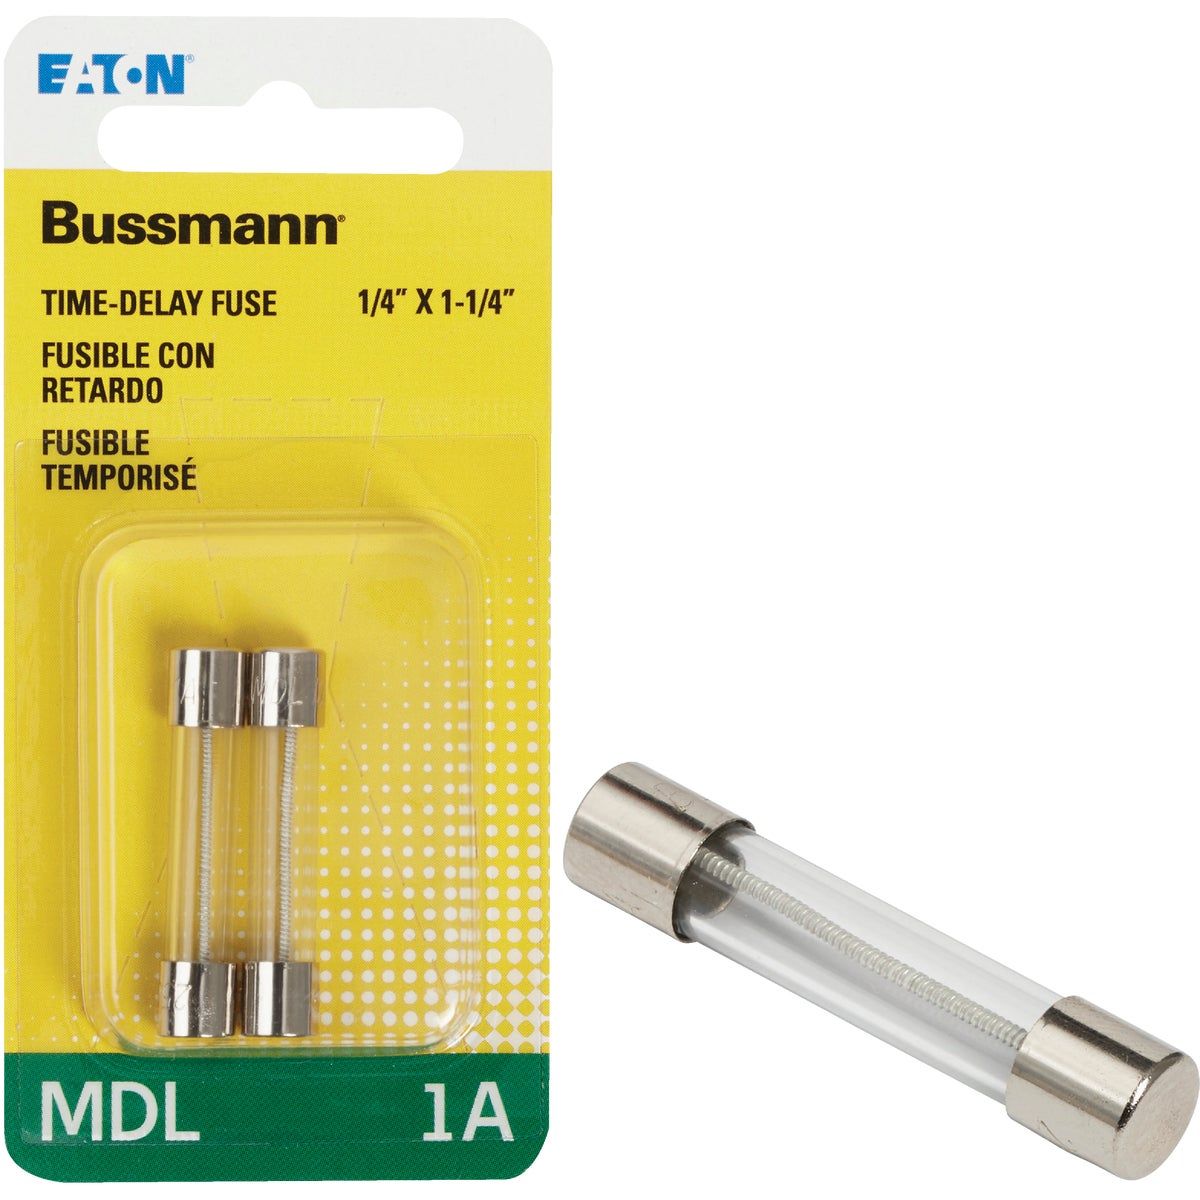 1A ELECTRONIC FUSE - BP/MDL-1 by Bussmann Cooper